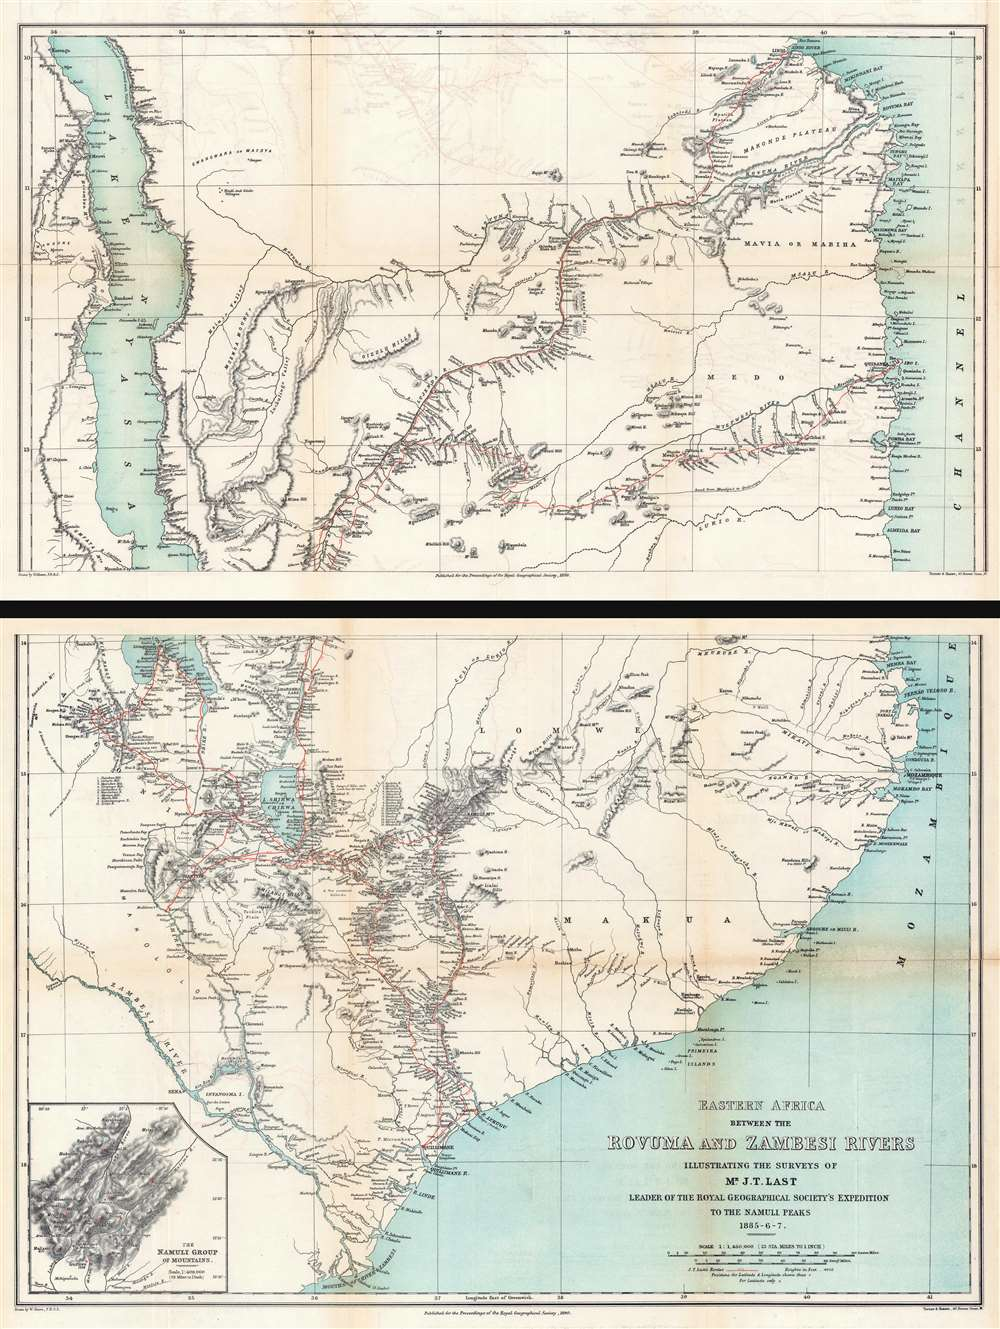 Eastern Africa Between the Rovuma and Zambesi Rivers Illustrating the Surveys of Mr. J.T. Last Leader of the Royal Geographical Society's Expedition to the Namuli Peaks 1885 - 6 - 7. - Main View